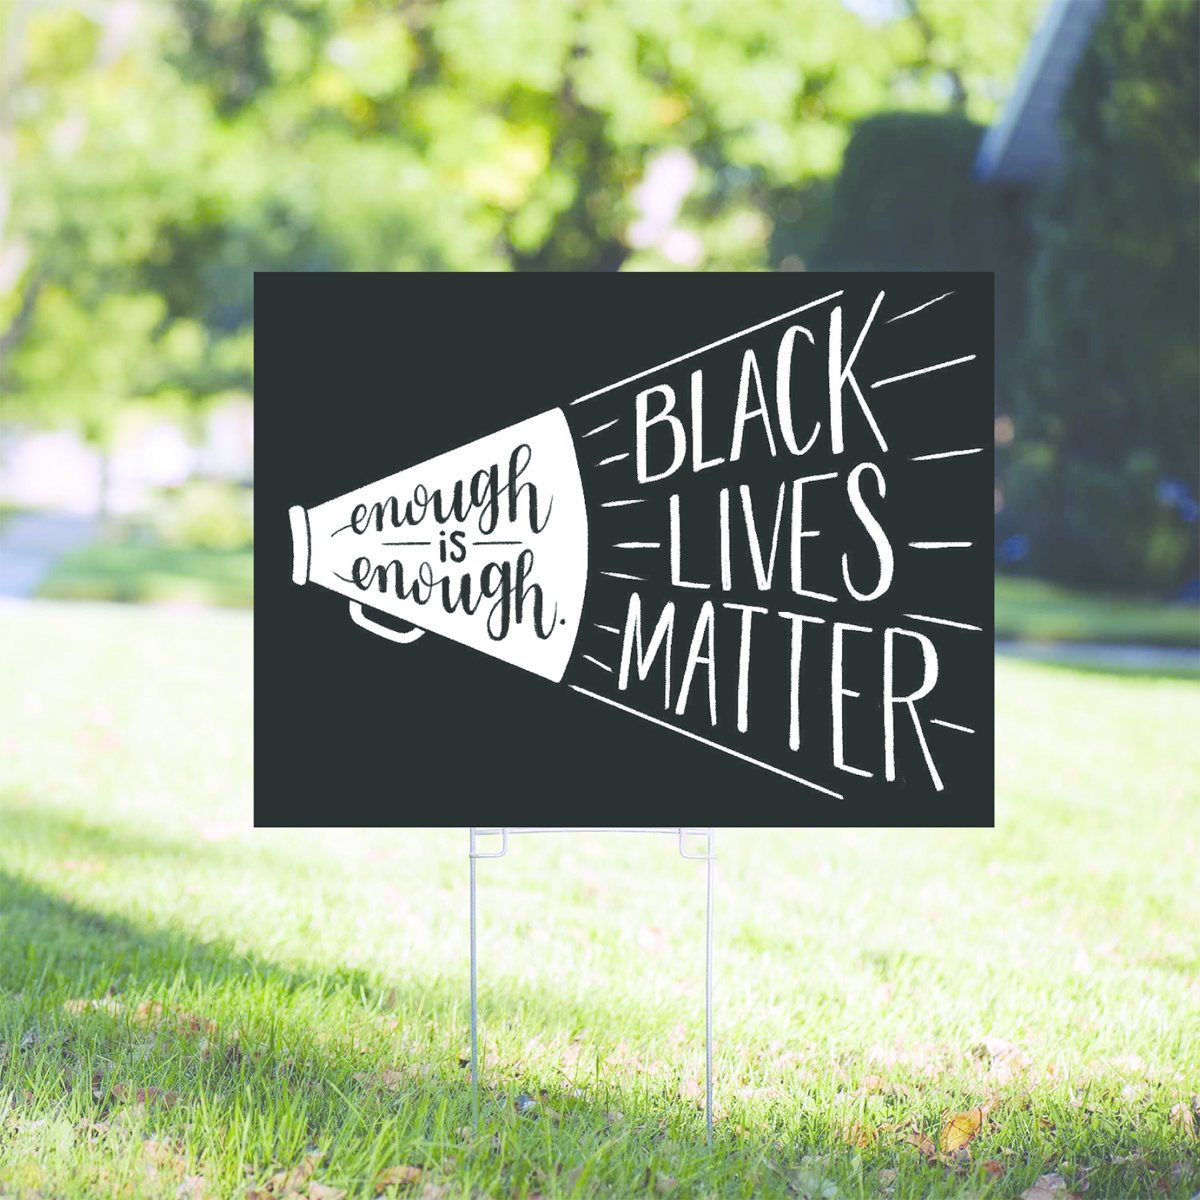 Gus and Ruby Letterpress Black Lives Matter Yard Sign PRE-ORDER